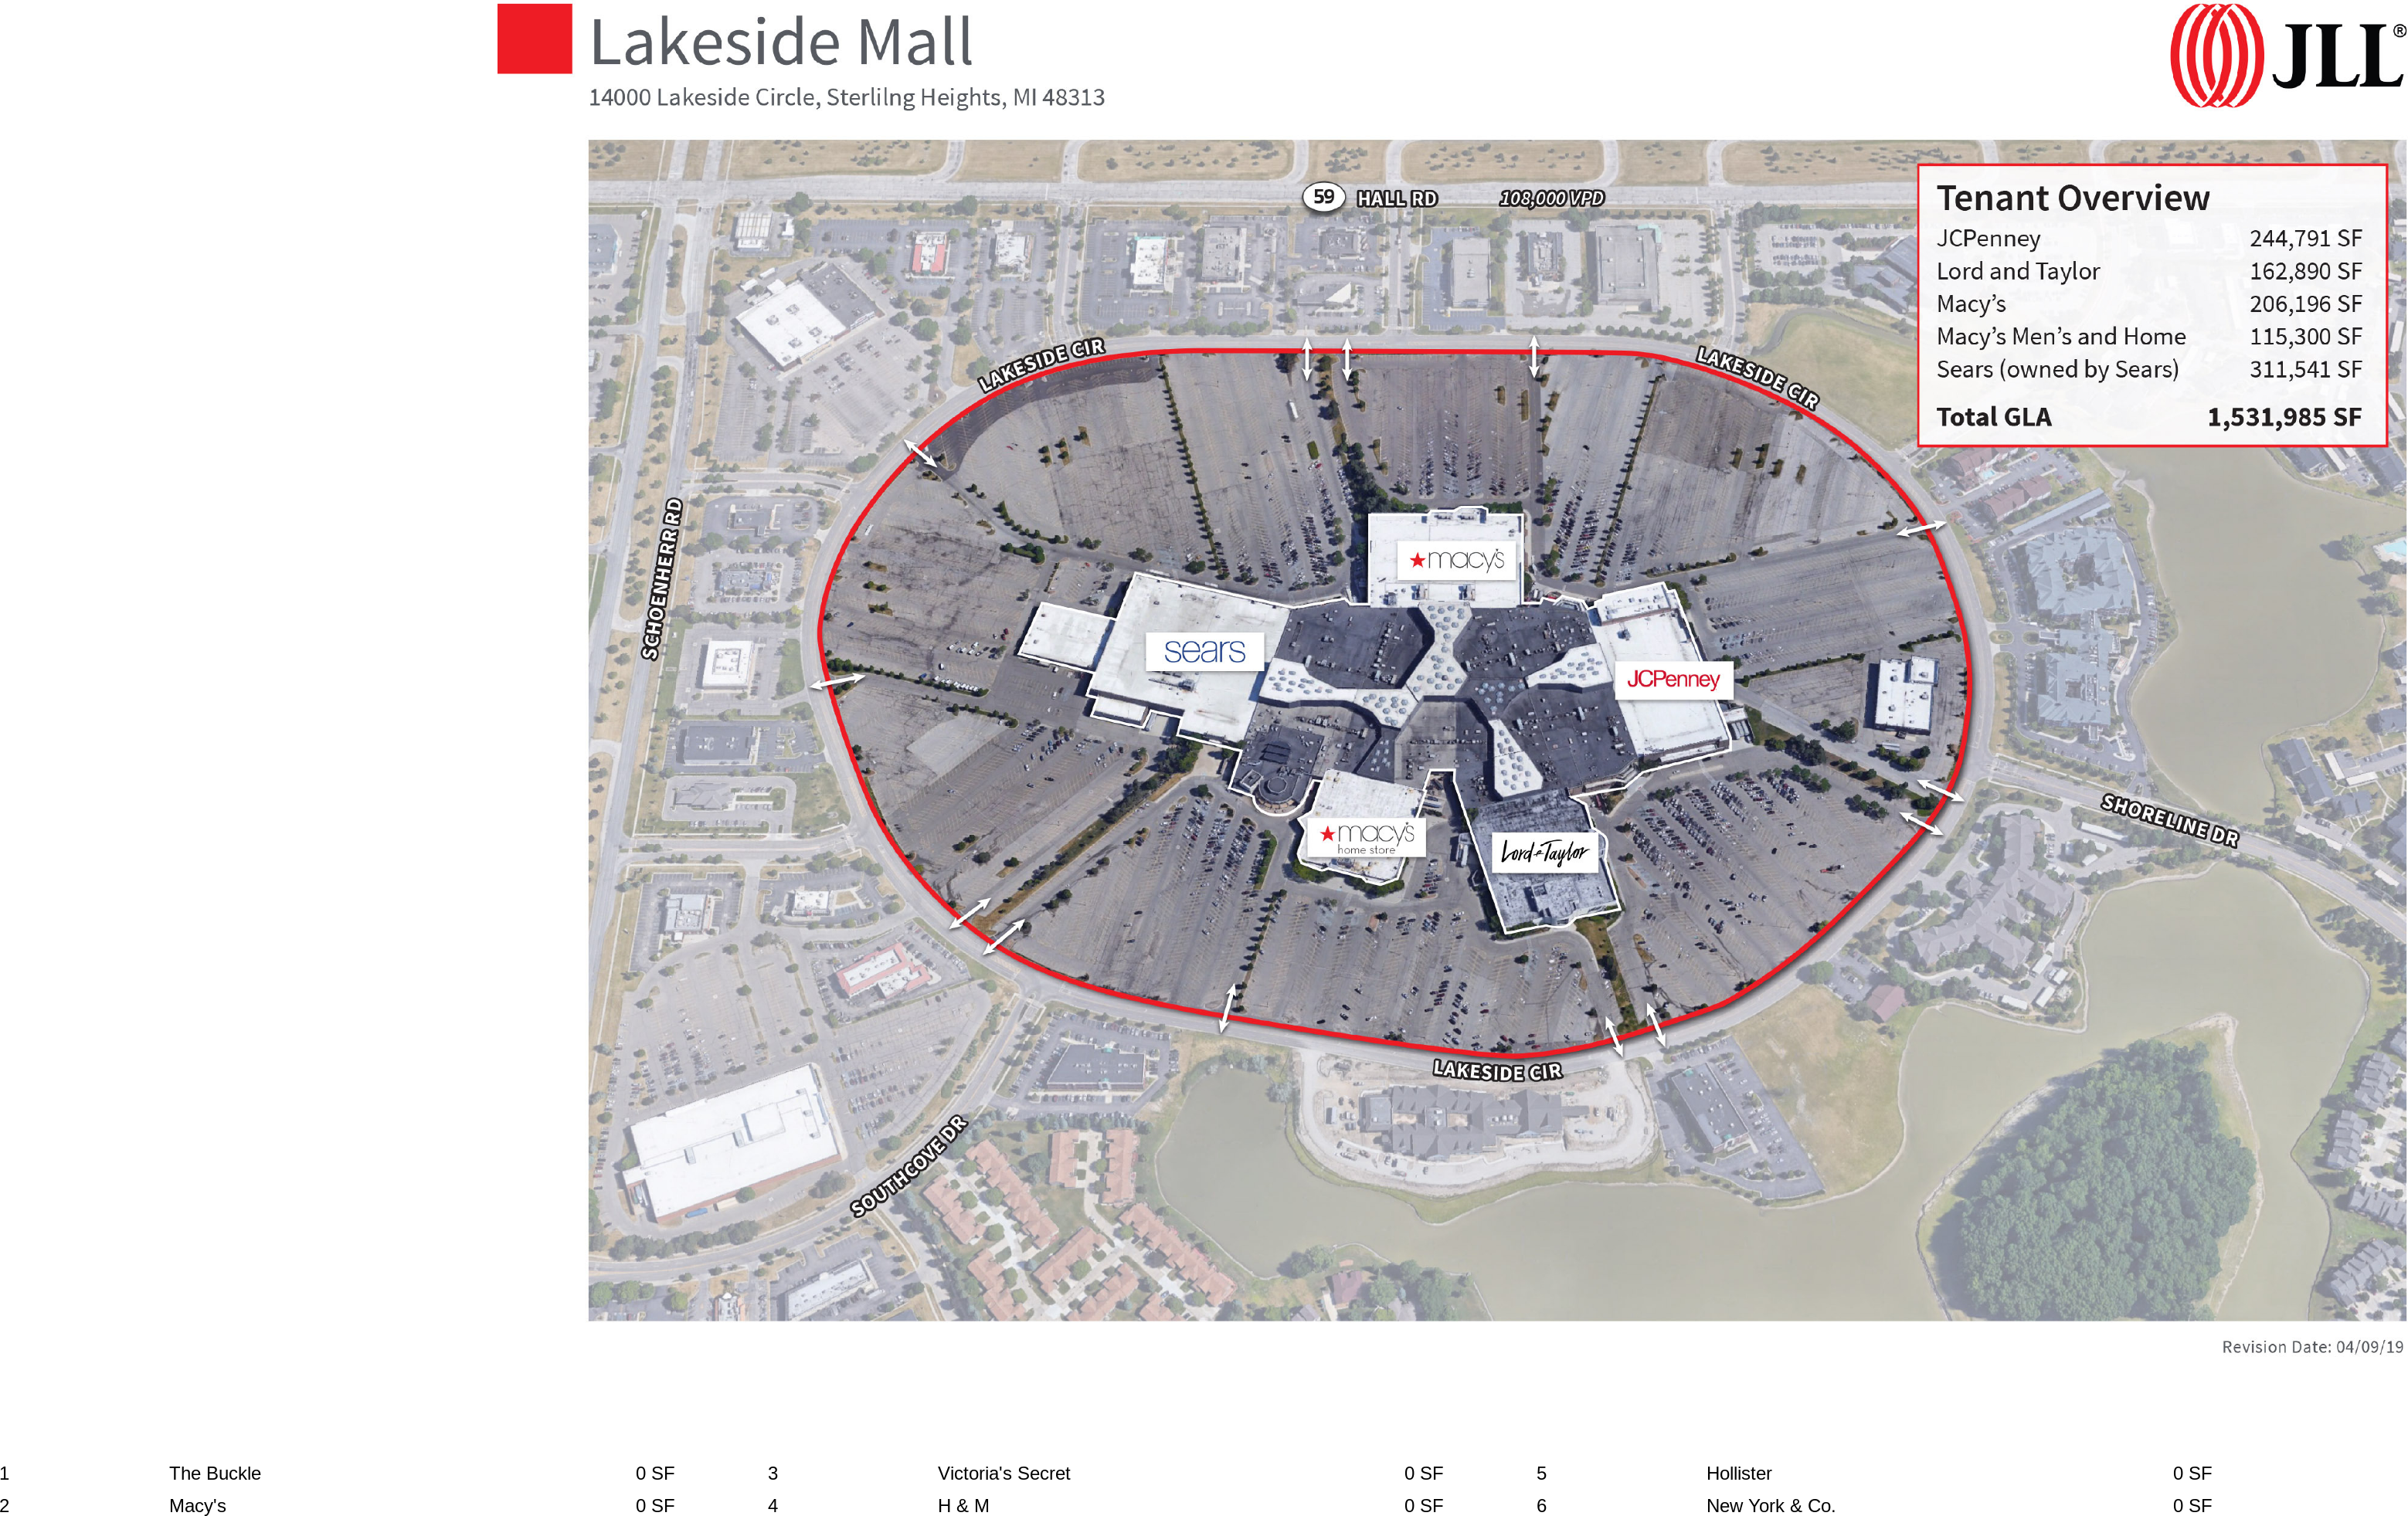 Lakeside Mall Michigan Map.Lakeside Mall Map Brazoria County Map Yahoo Maps And Directions